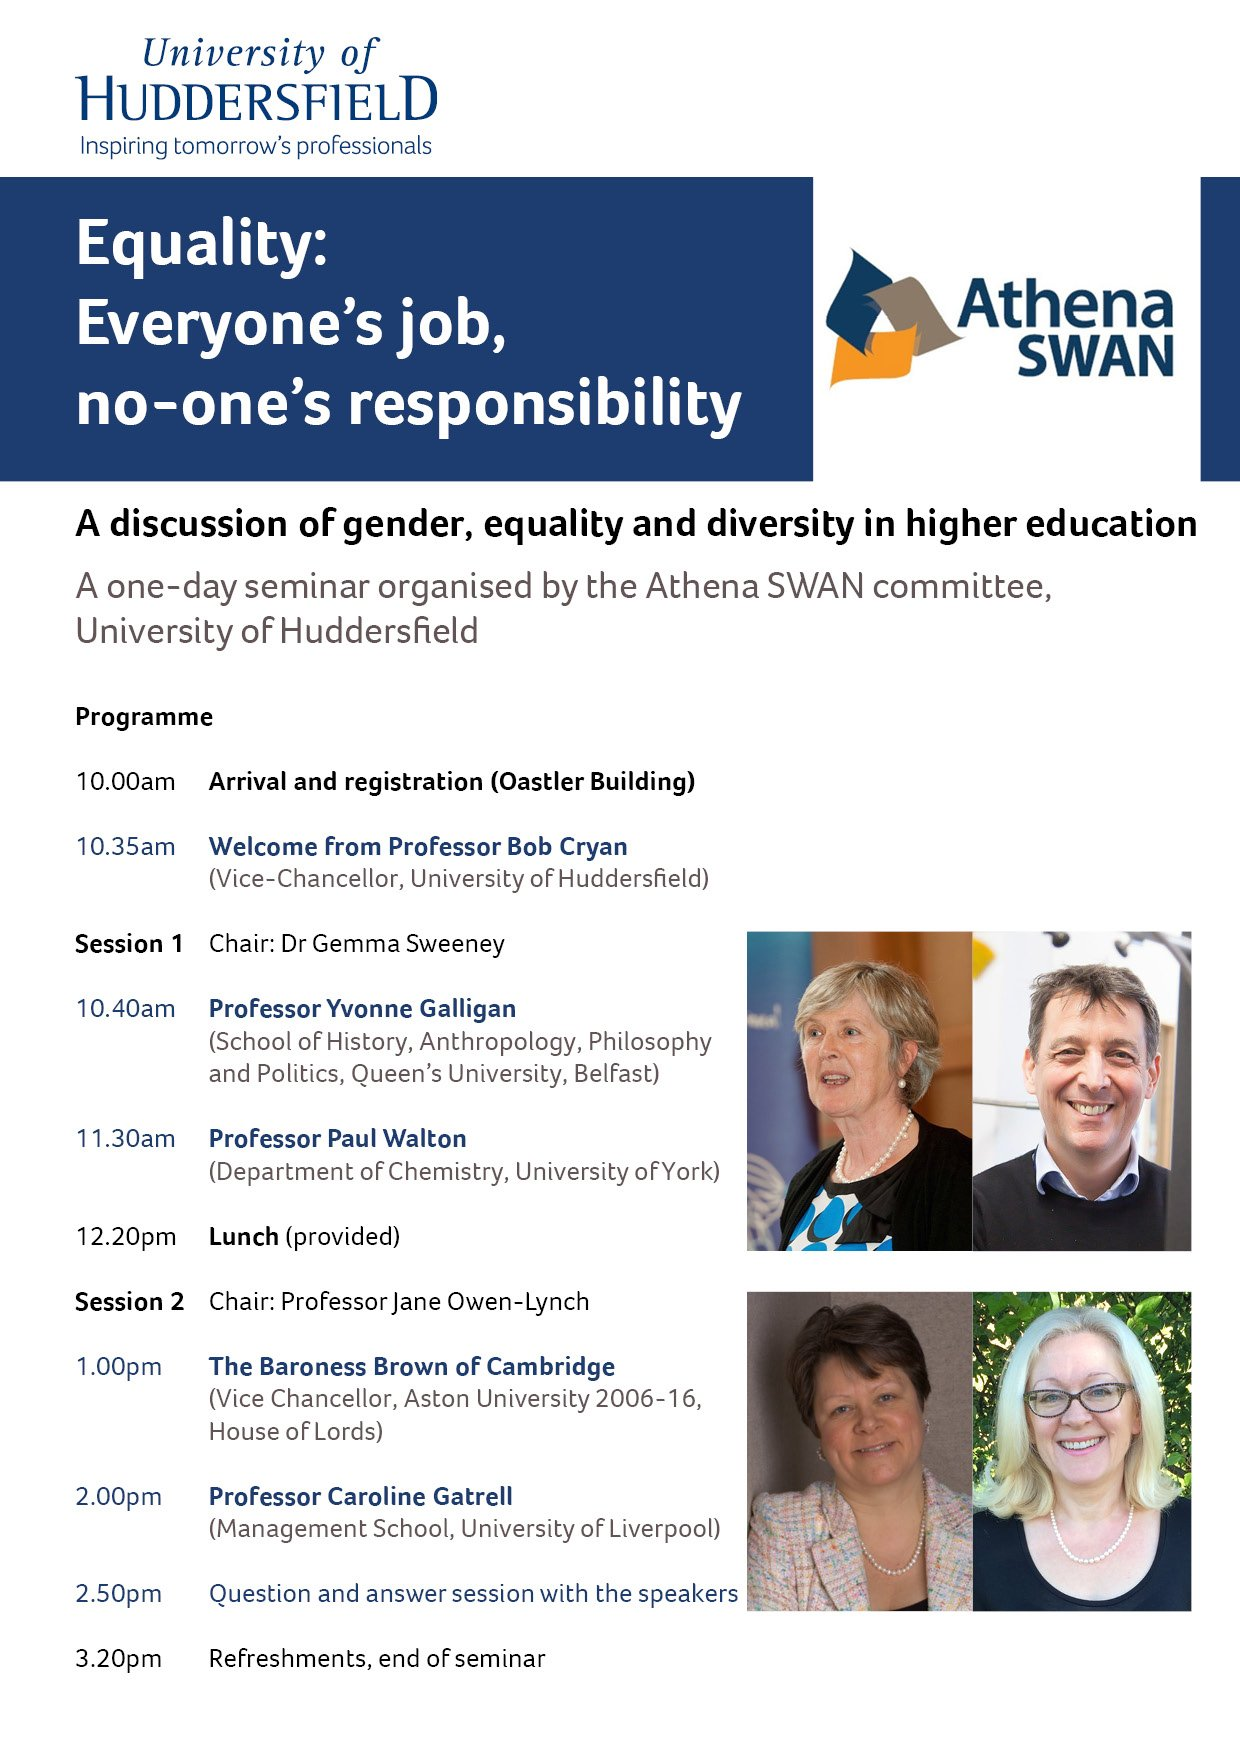 Here is the latest version of the programme for #hudequality - we look forward to seeing you on Friday! https://t.co/yMu0eJTwdf